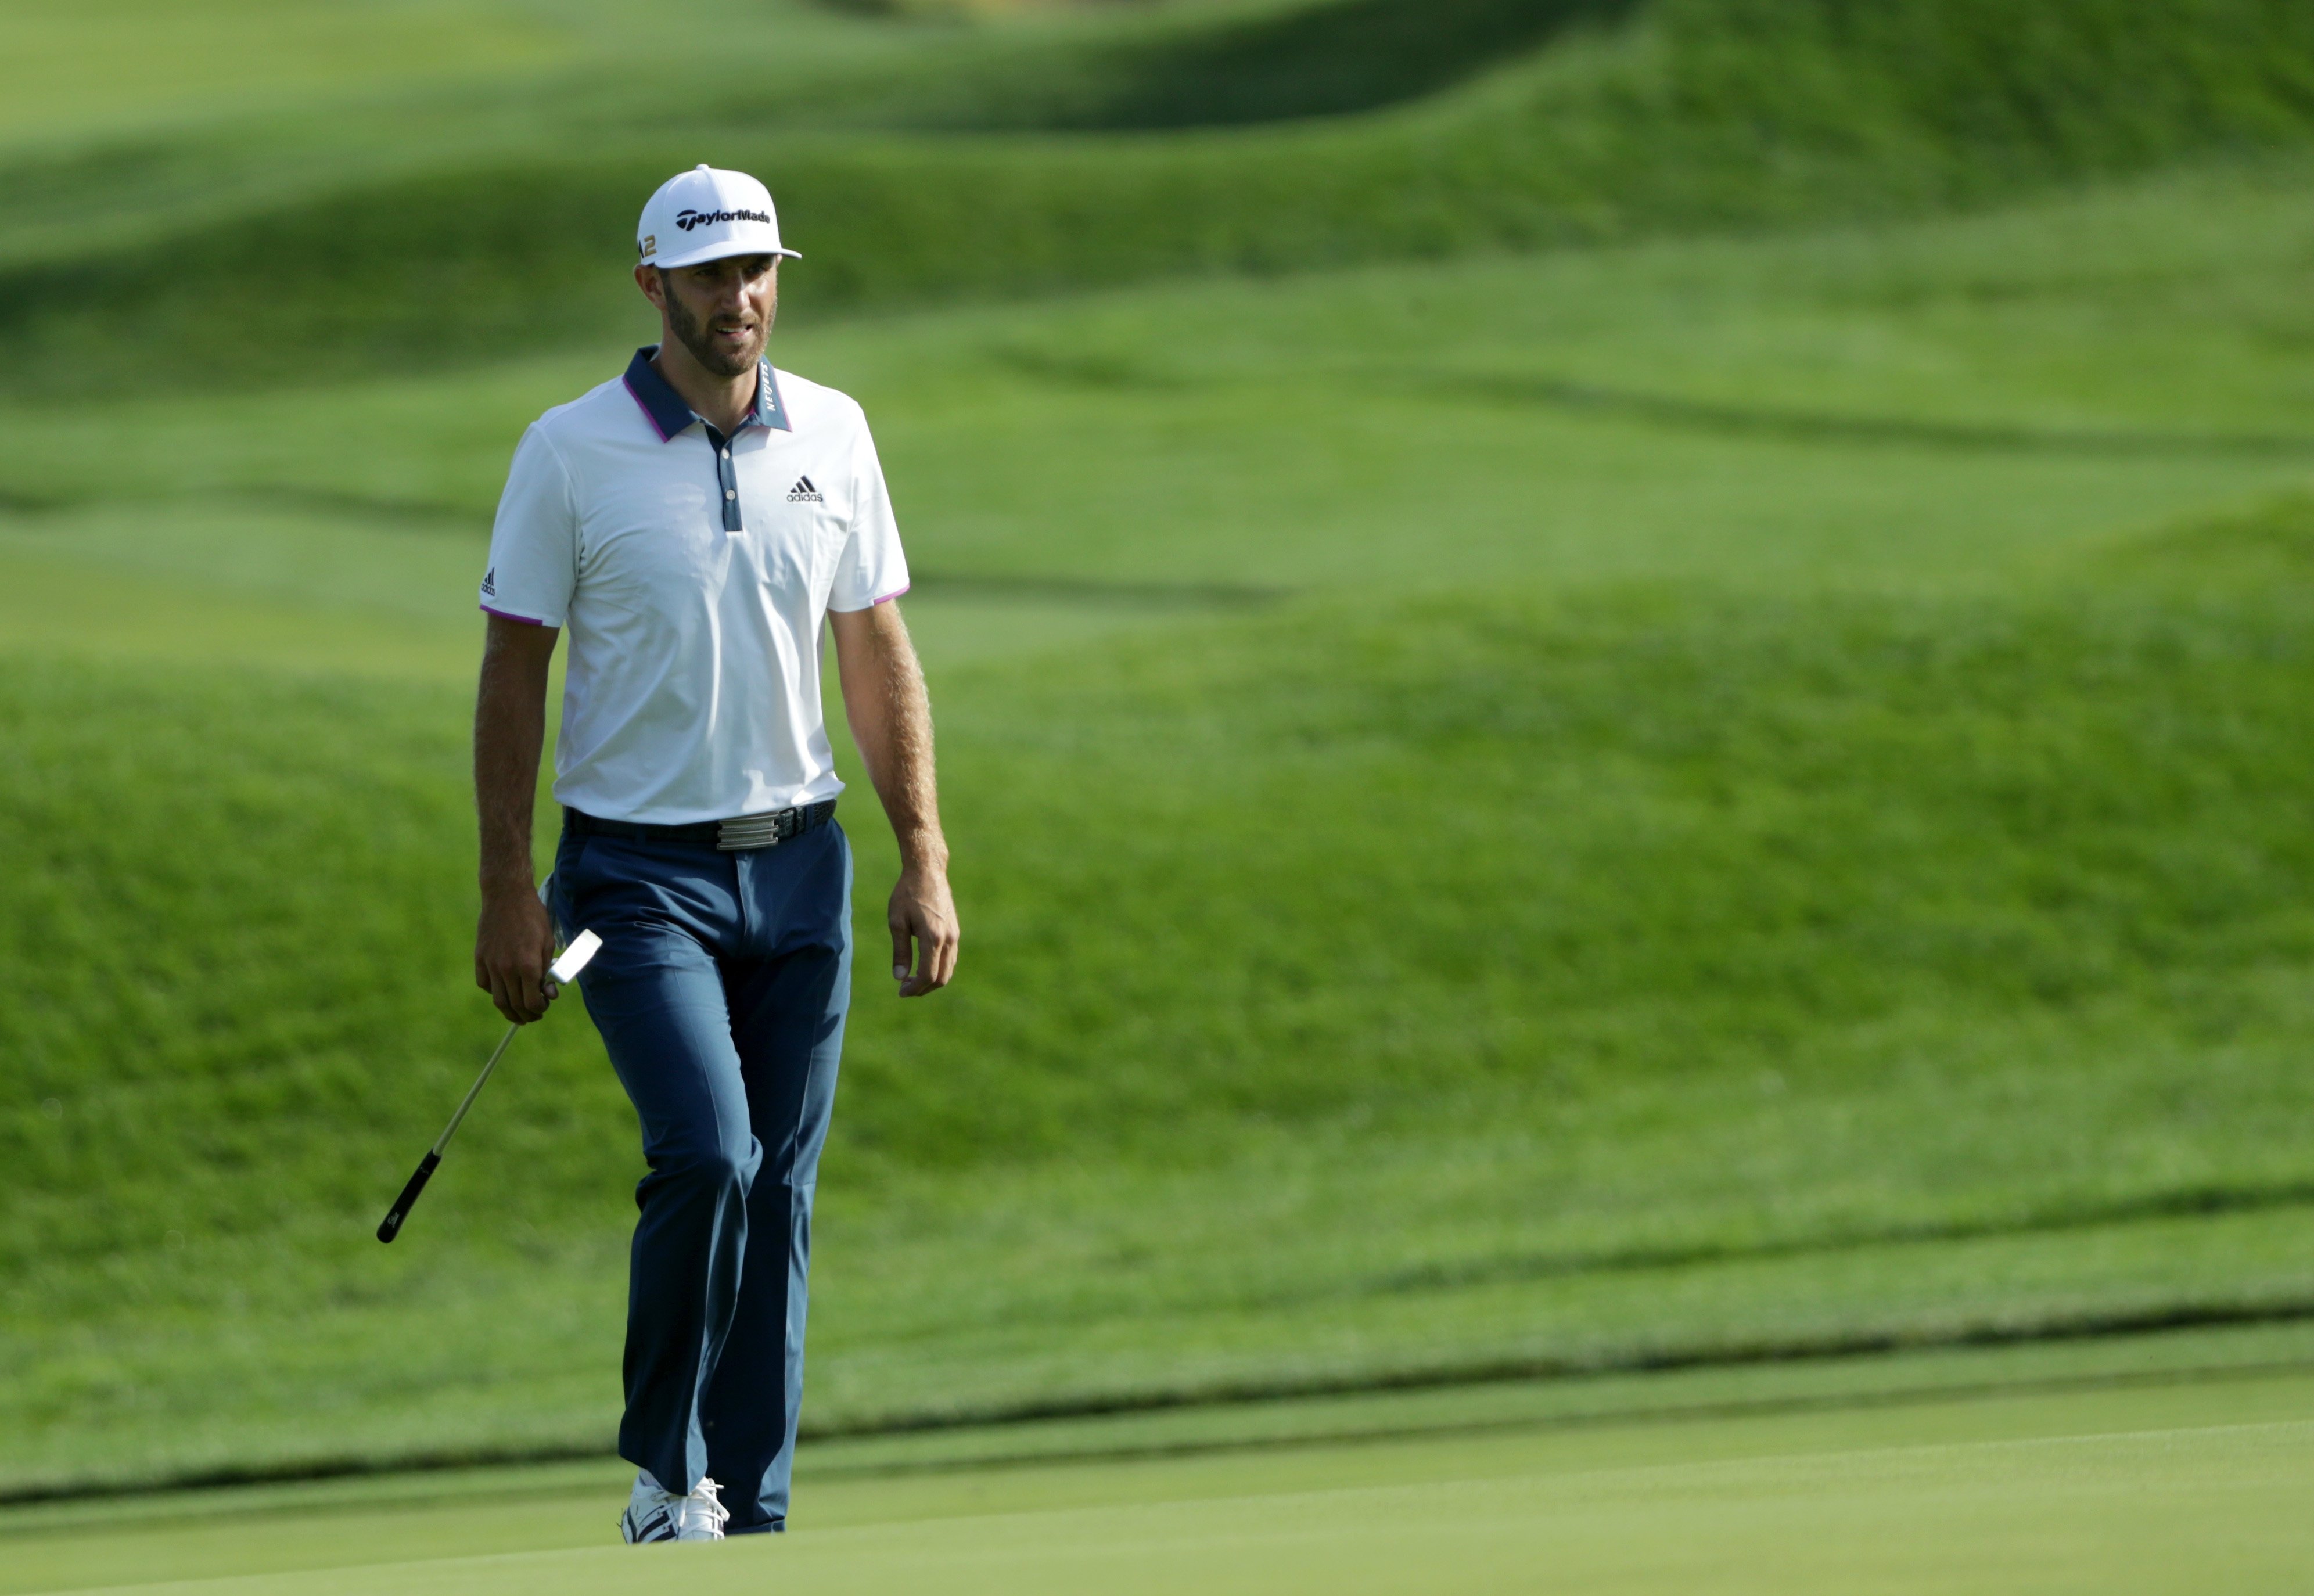 Dustin Johnson is a masher of the golf ball. (Getty Images)